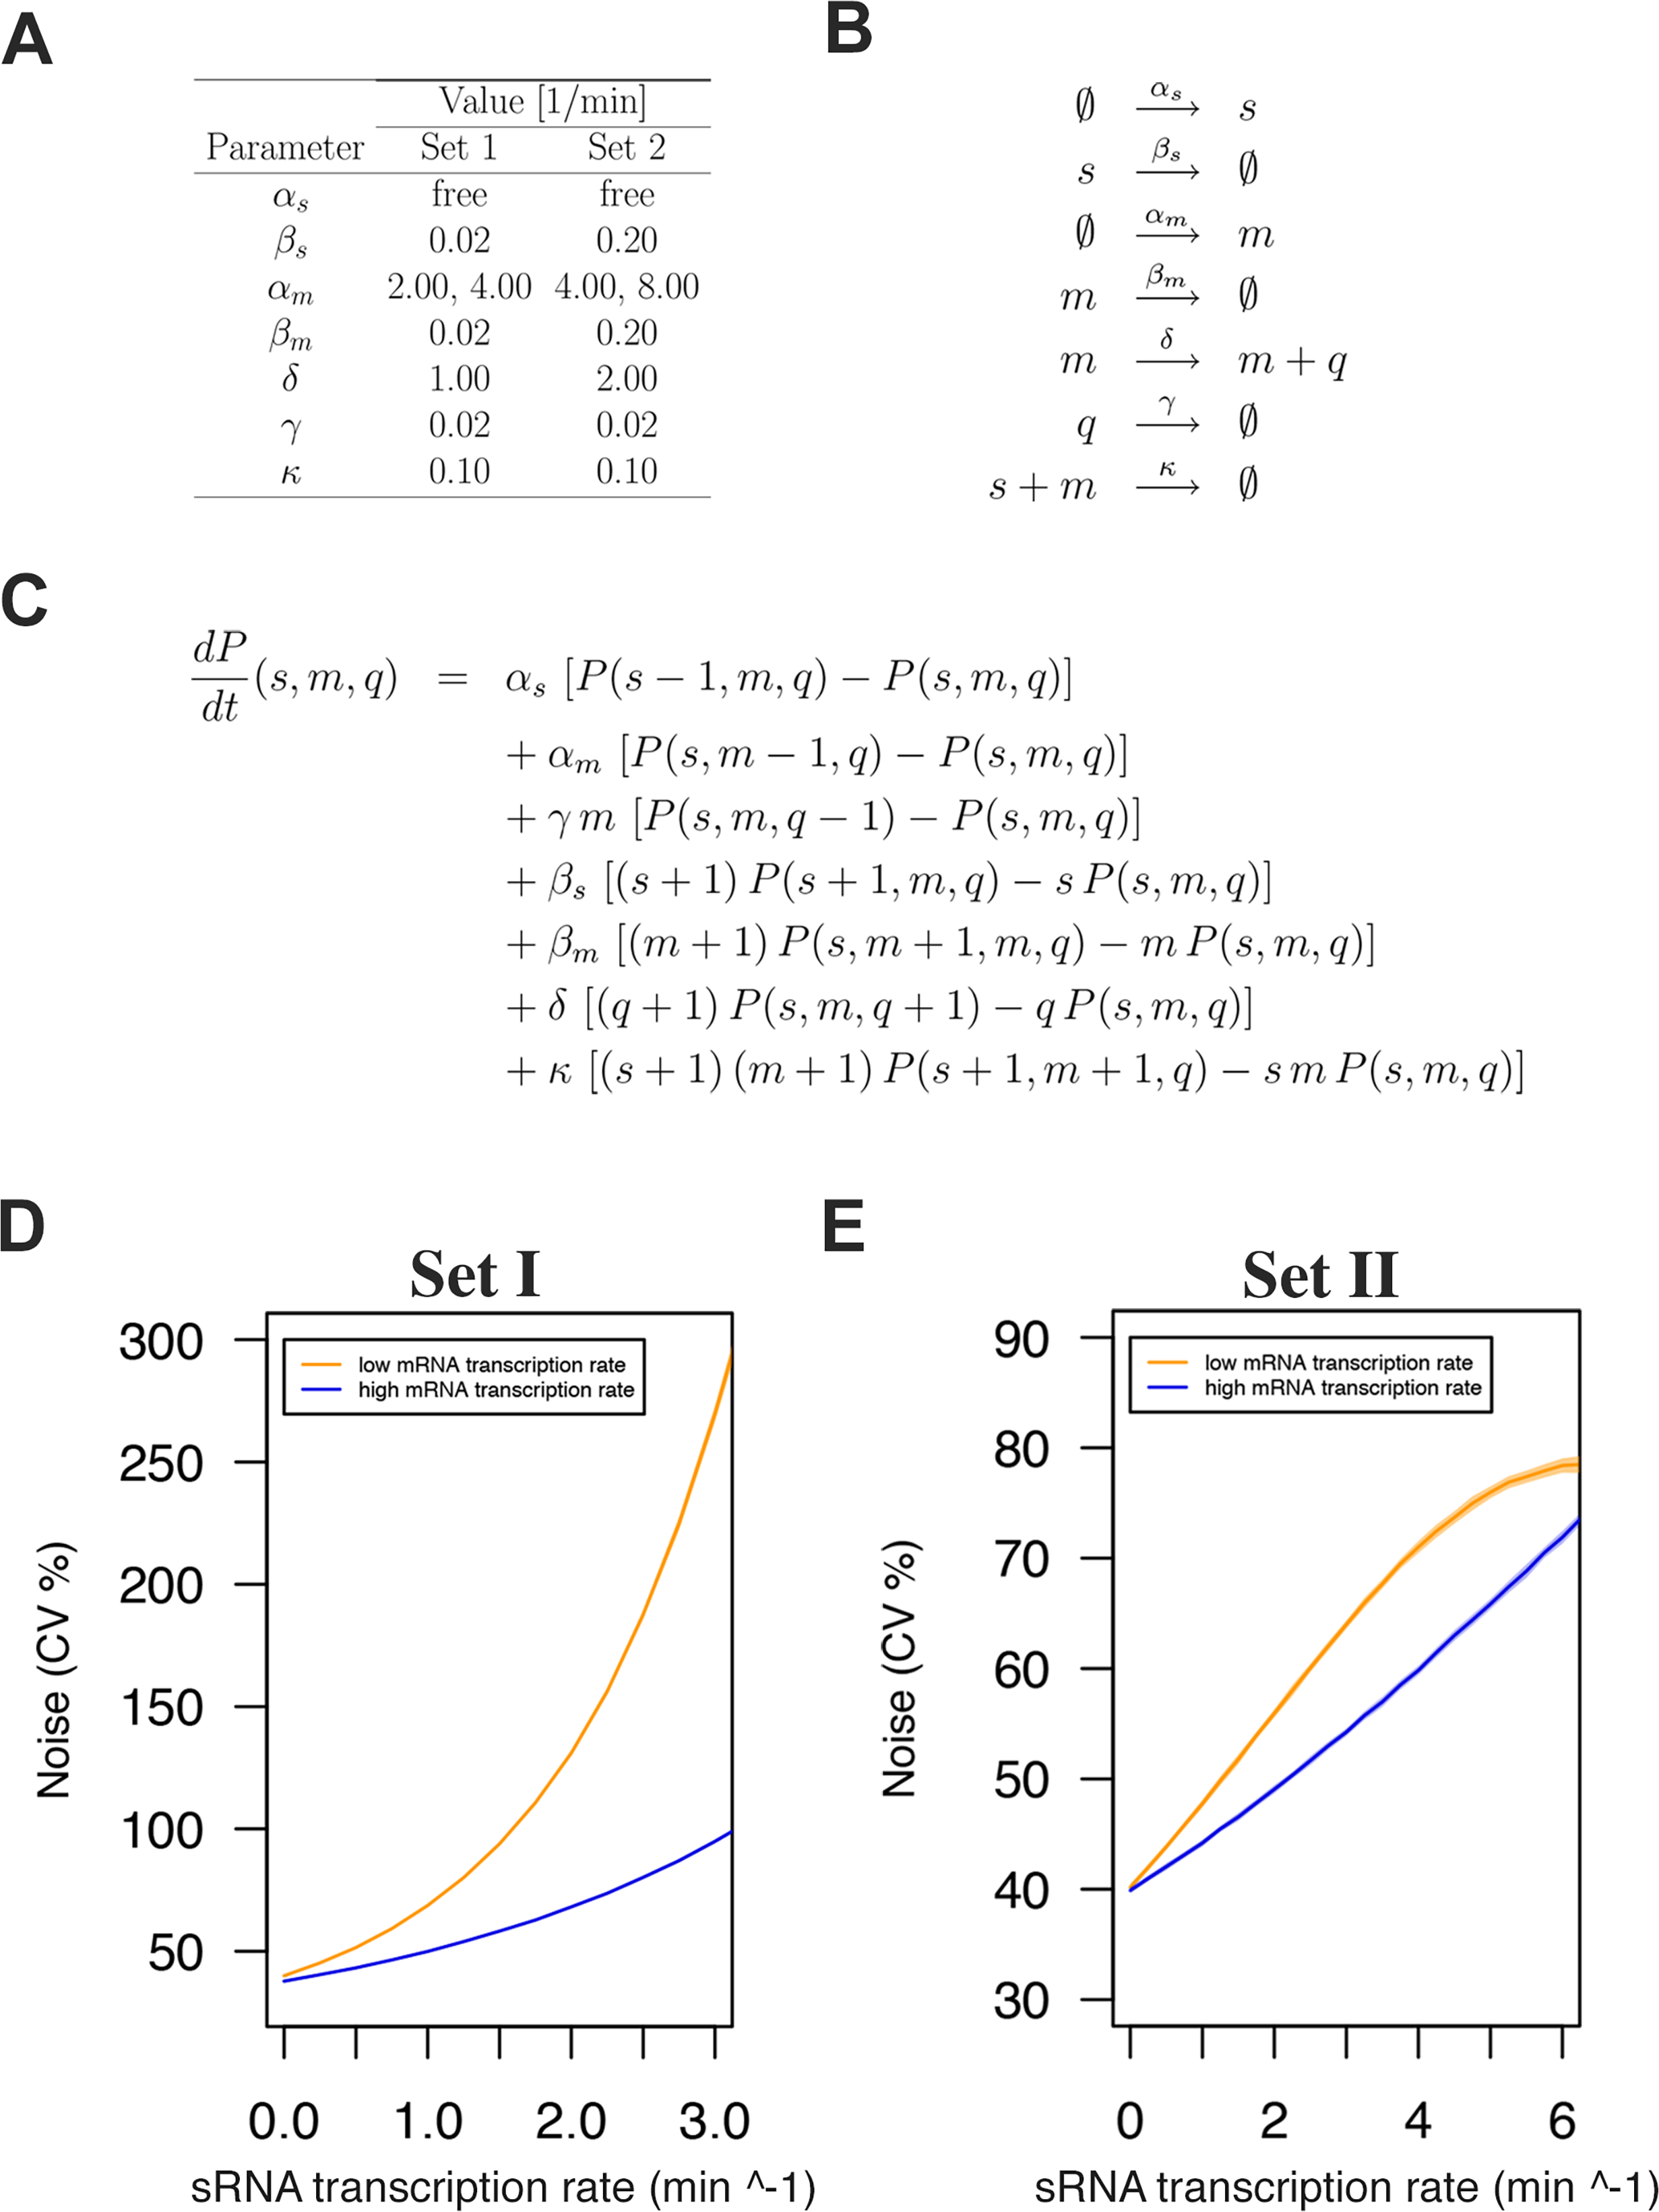 sRNA regulation increases protein expression noise in a stochastic simulation model.